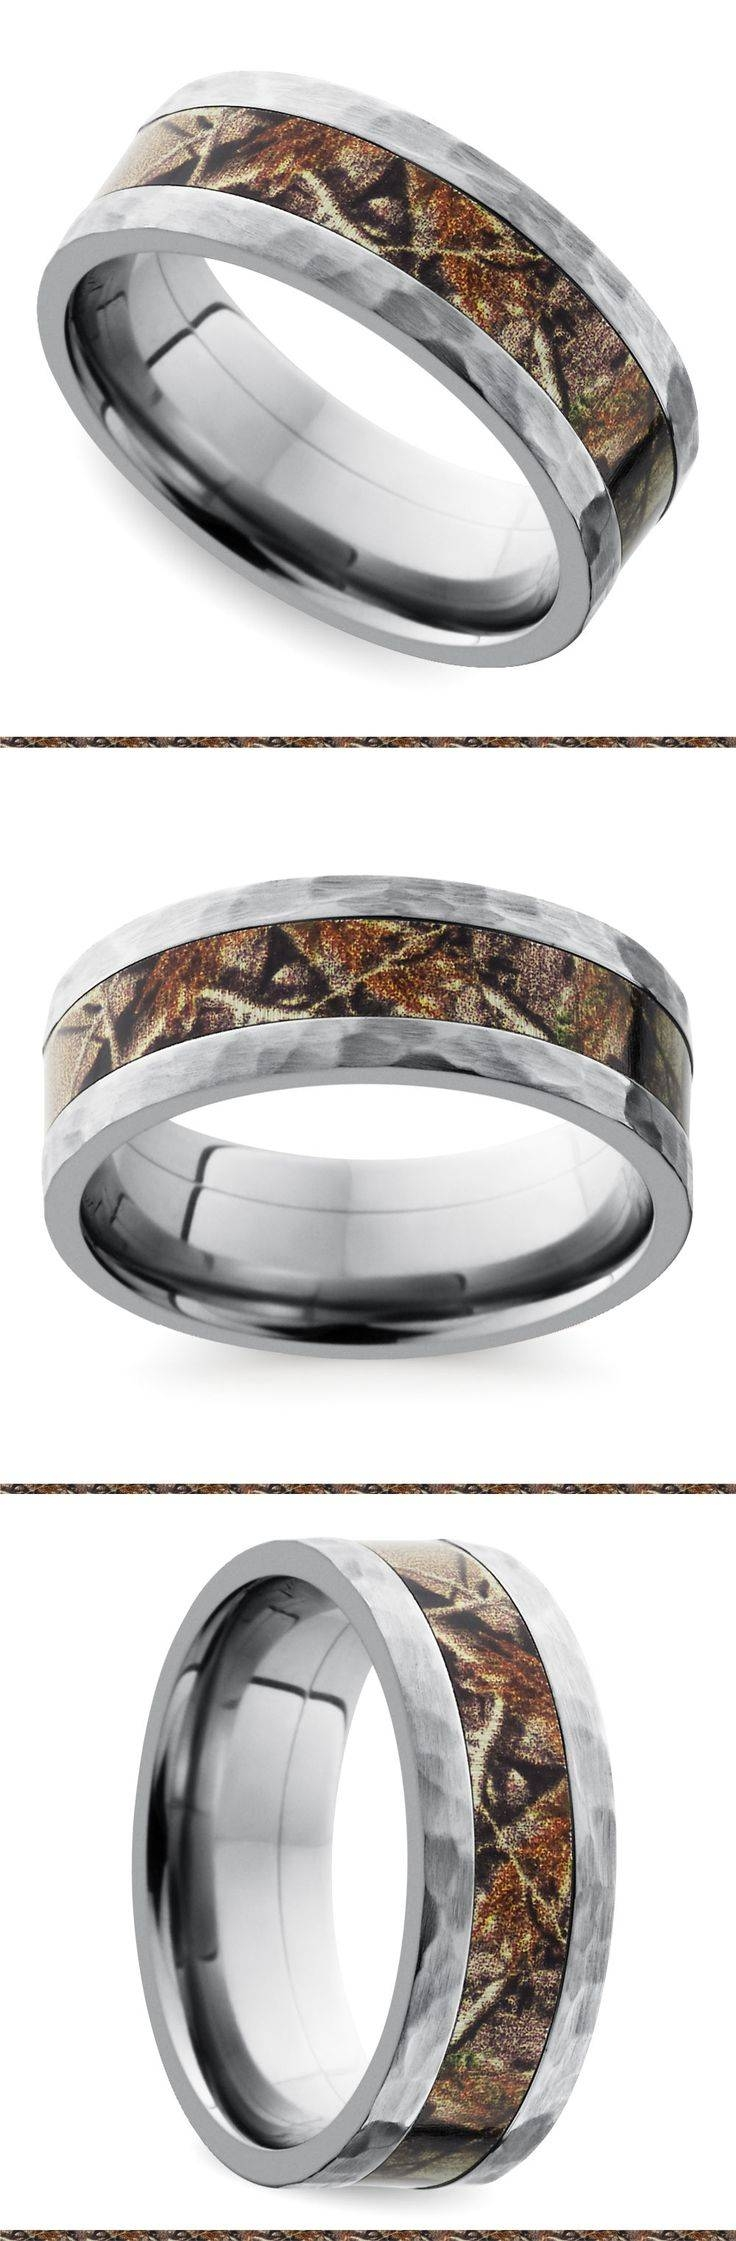 20 Best Camo Men's Wedding Rings Images On Pinterest | Wedding Pertaining To Recent Camo Anniversary Rings (Gallery 25 of 25)